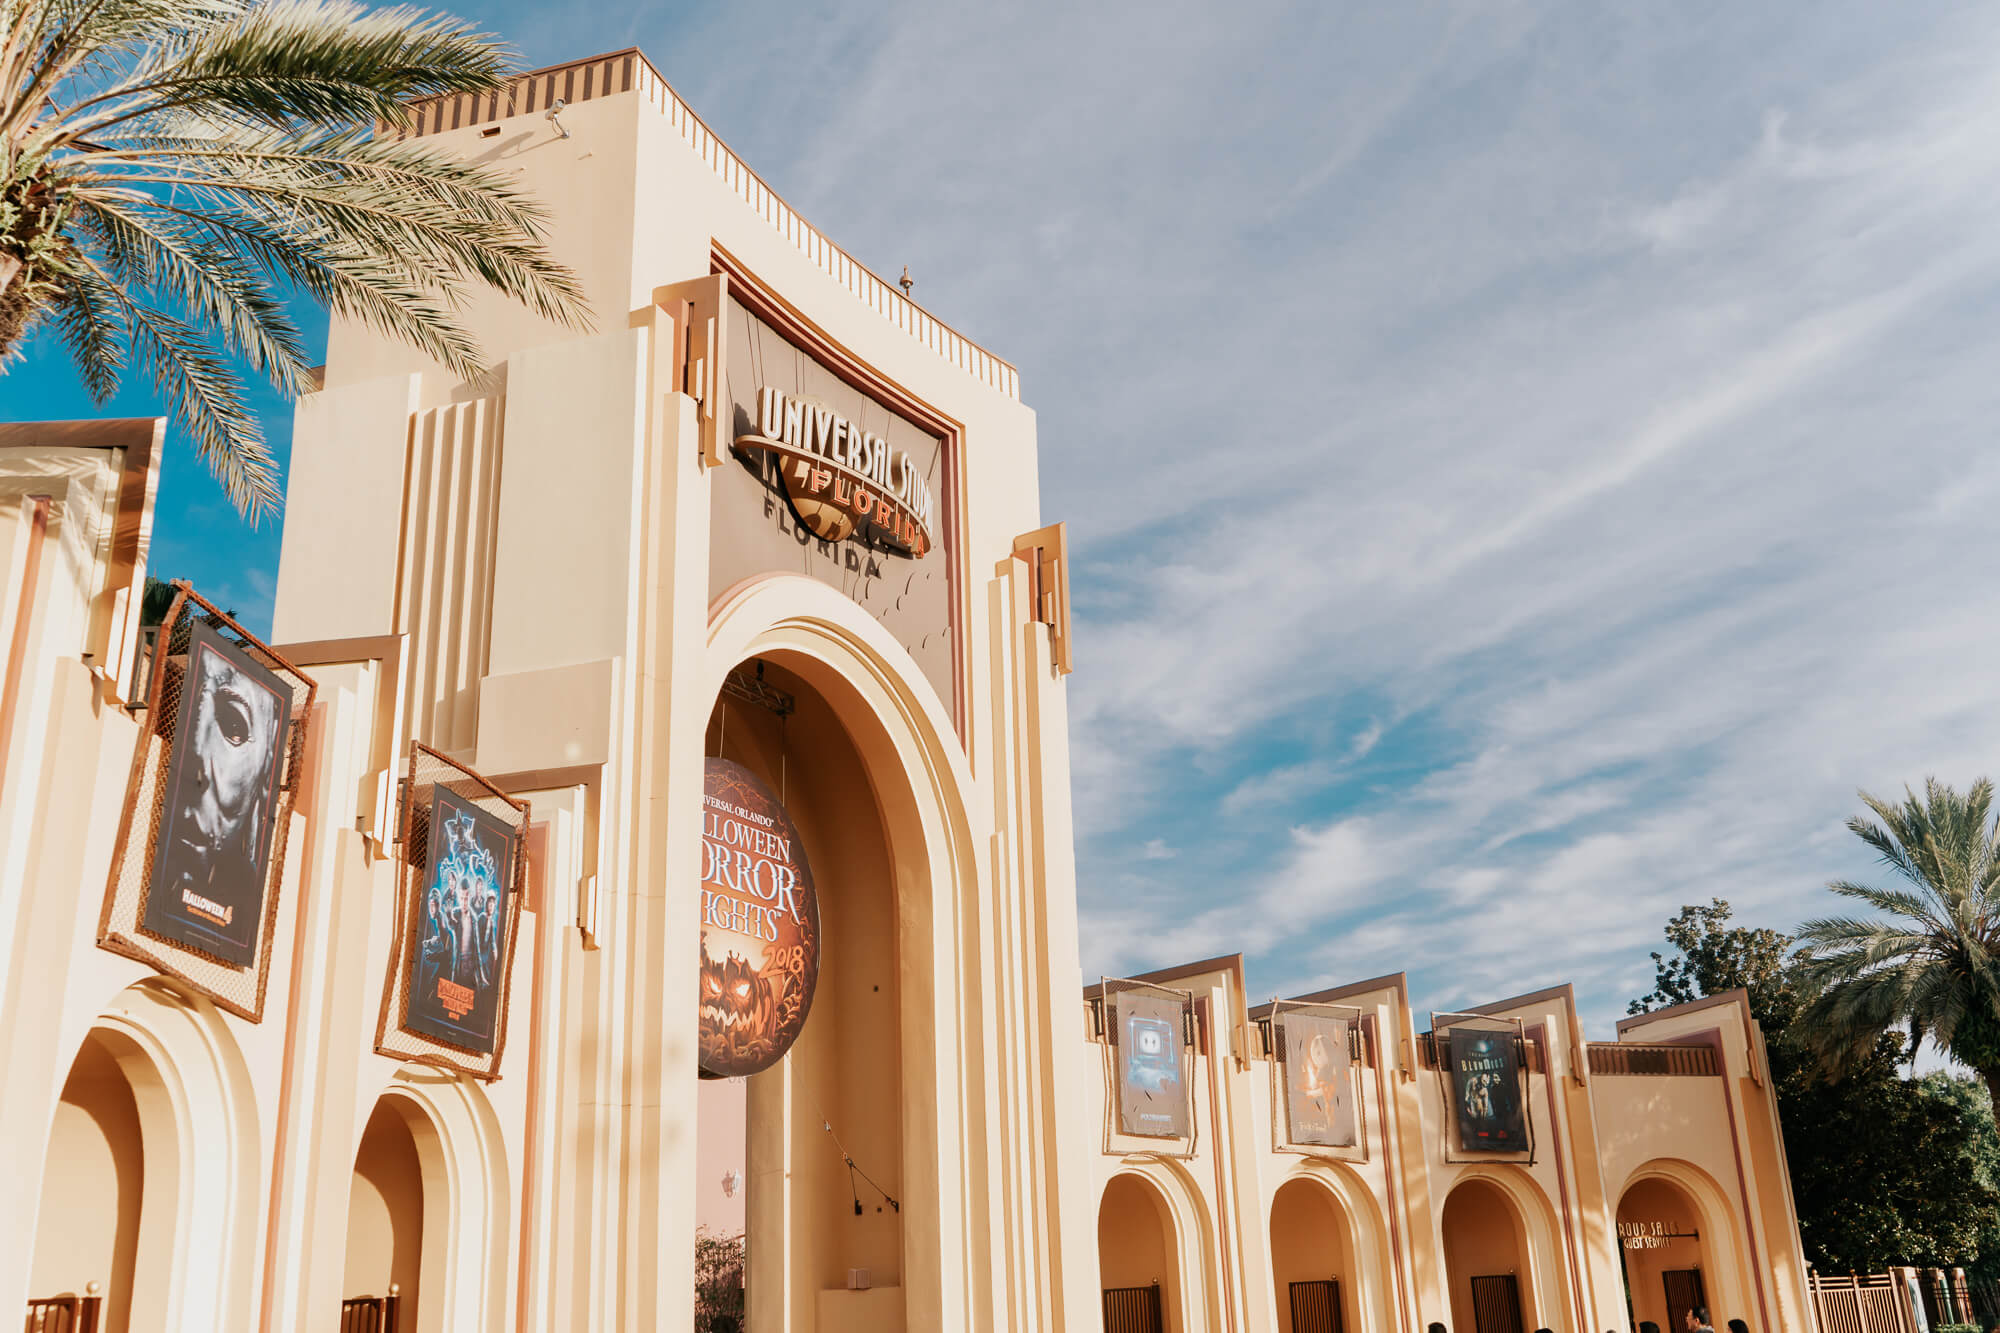 How to Become a Scareactor at Universal Studios: Audition Tips & Advice